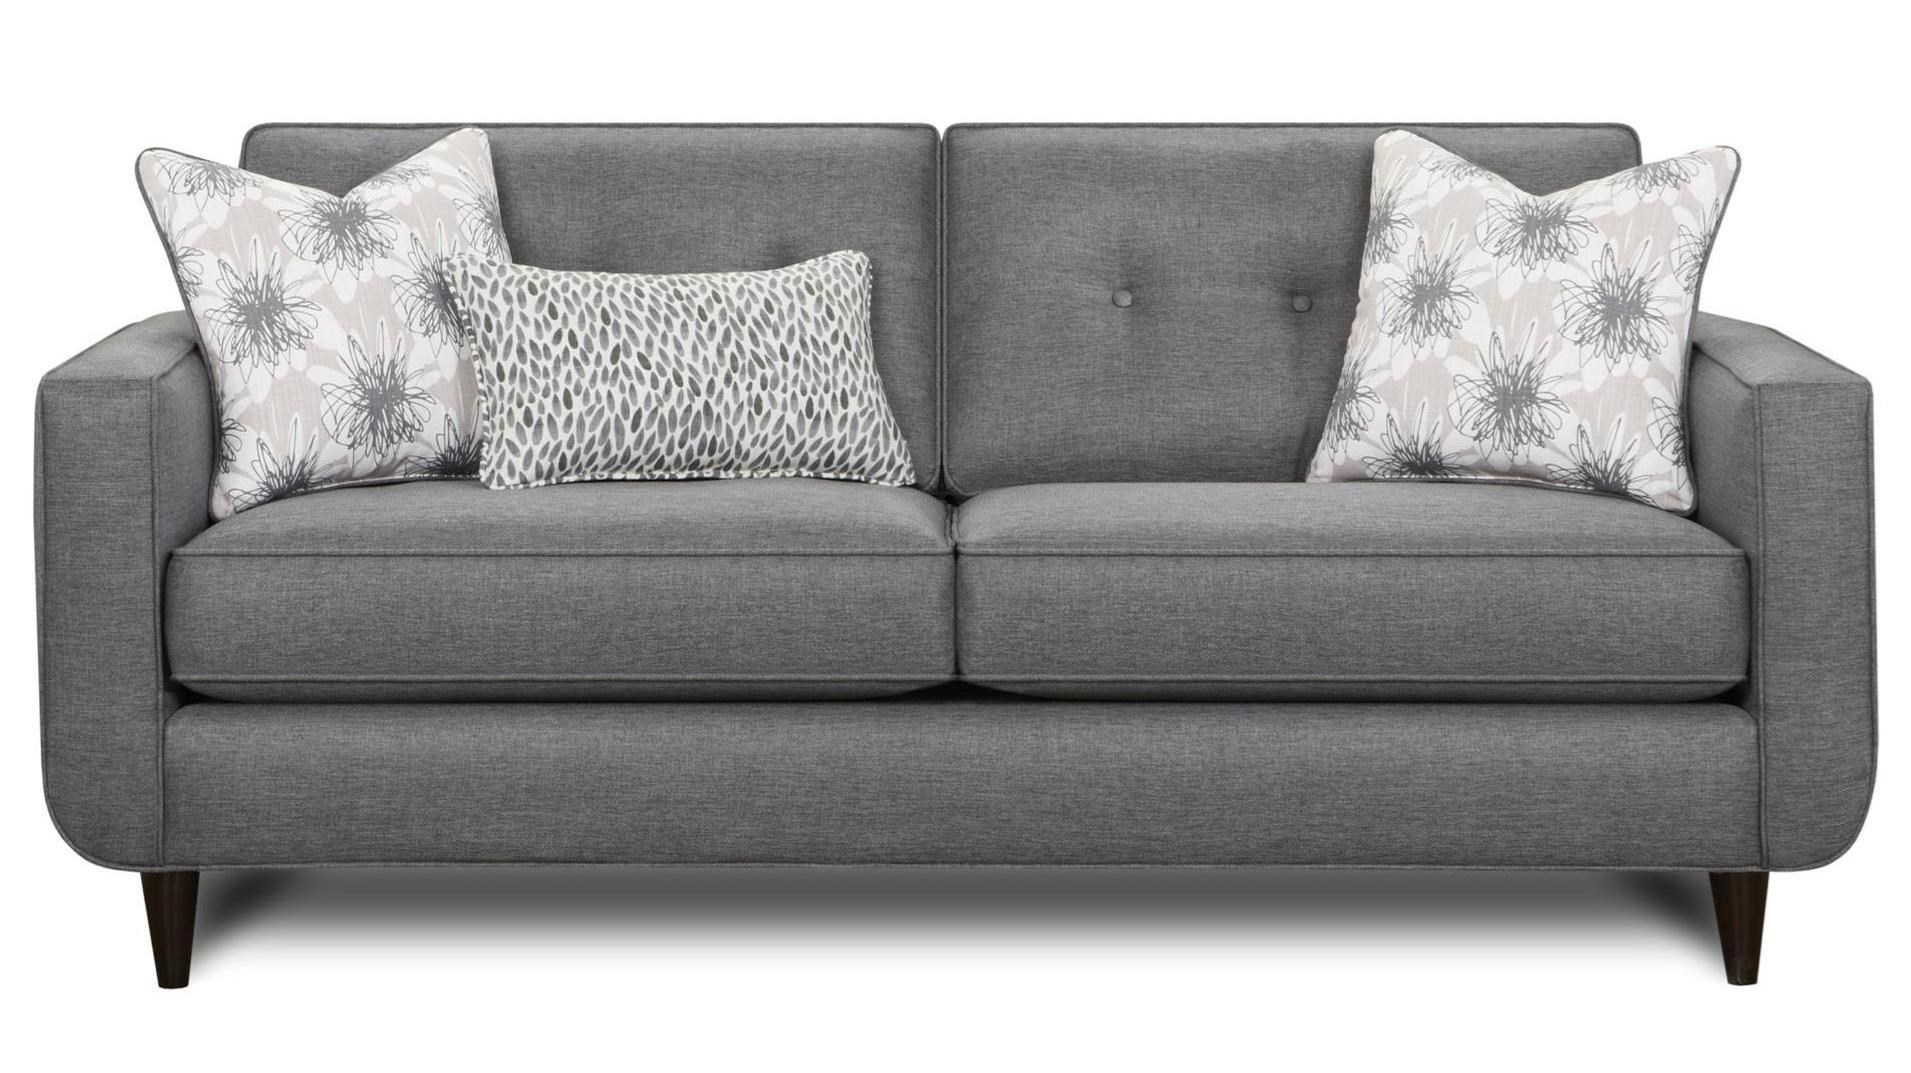 1850 Sofa by Fusion Furniture at Miller Waldrop Furniture and Decor